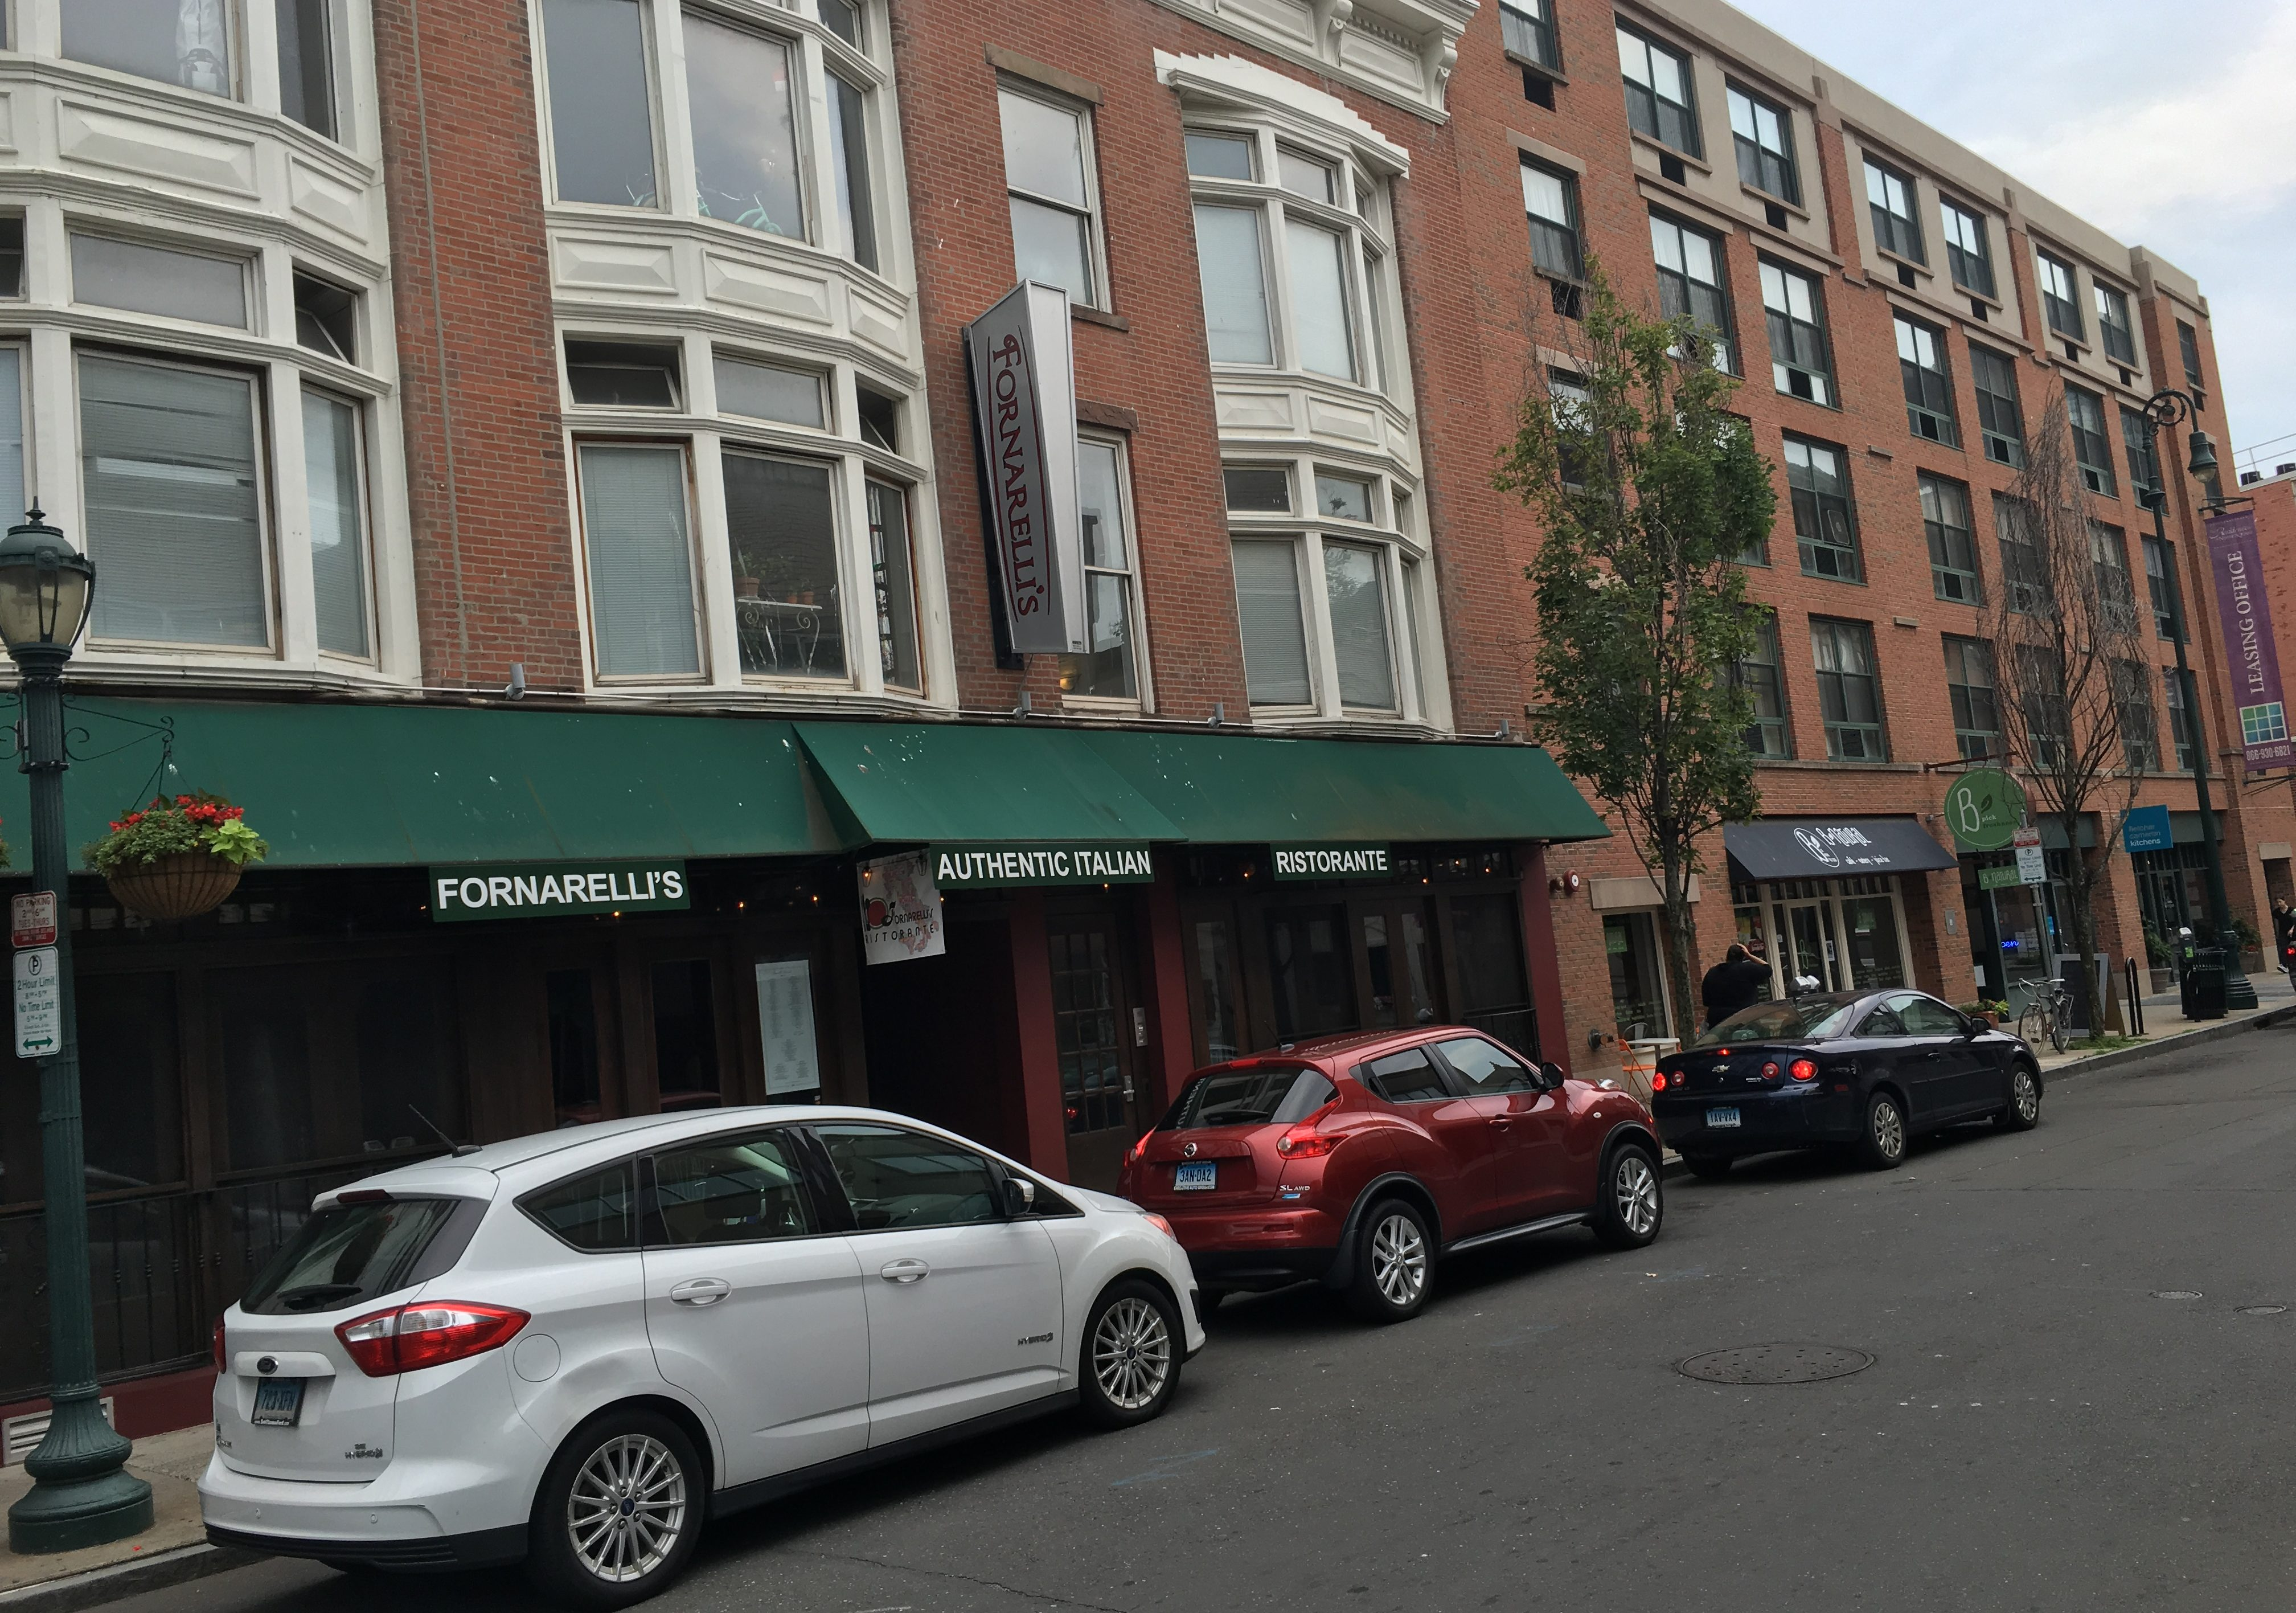 A blend of new and old buildings in a Ninth Square streetscape.